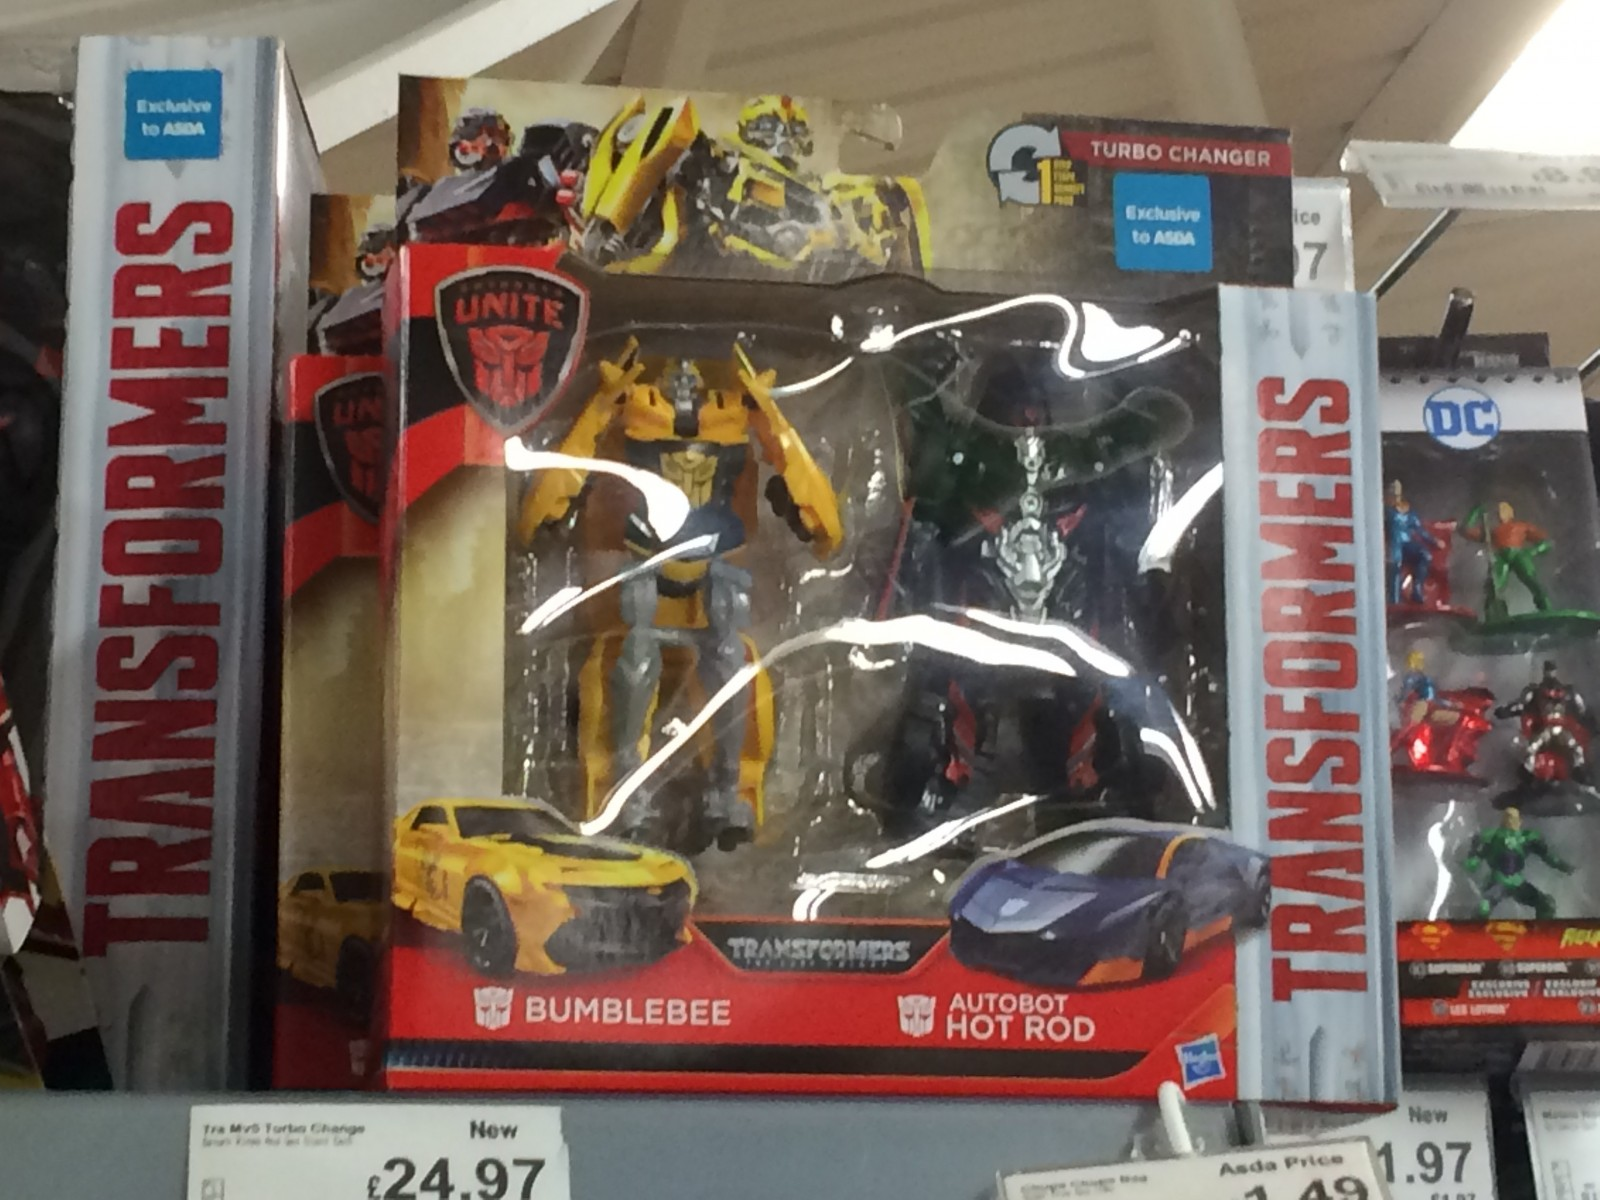 Transformers News: Transformers The Last Knight Hot Rod News: One Step 2 Pack Found in UK and Price Decrease for Legio